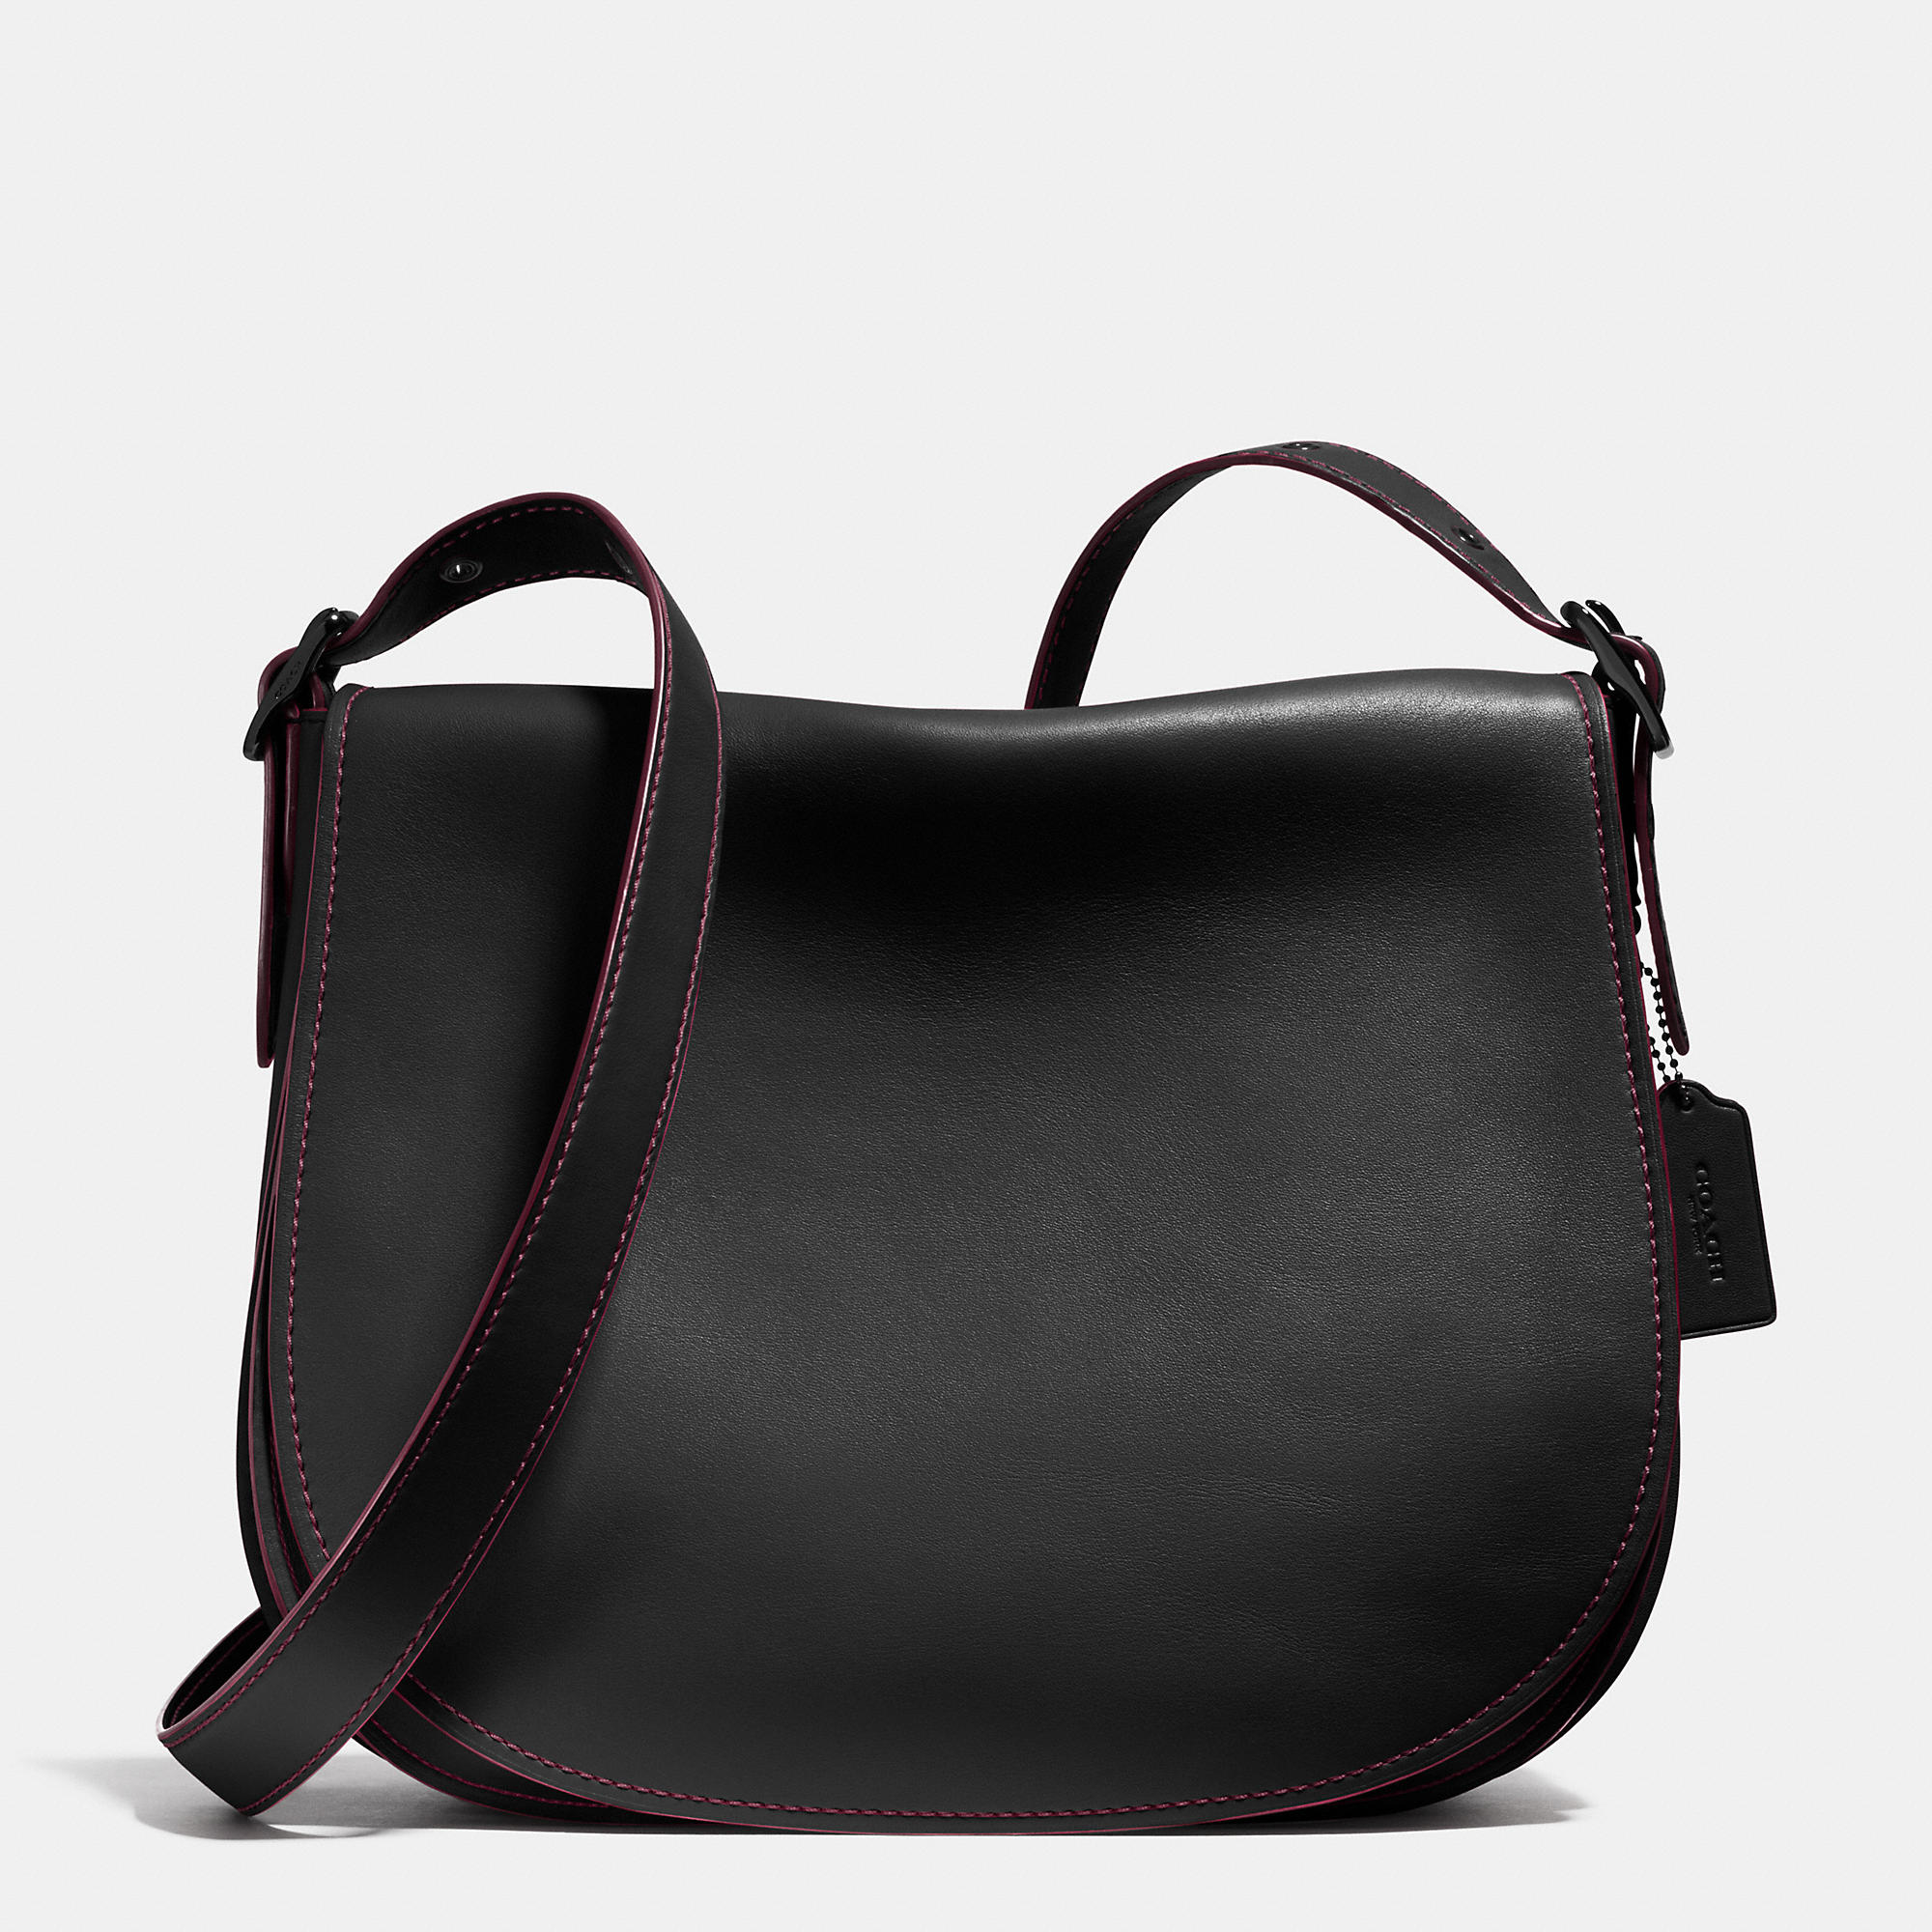 f74198b7cb25 Lyst - COACH Saddle Bag 35 In Glovetanned Leather in Black